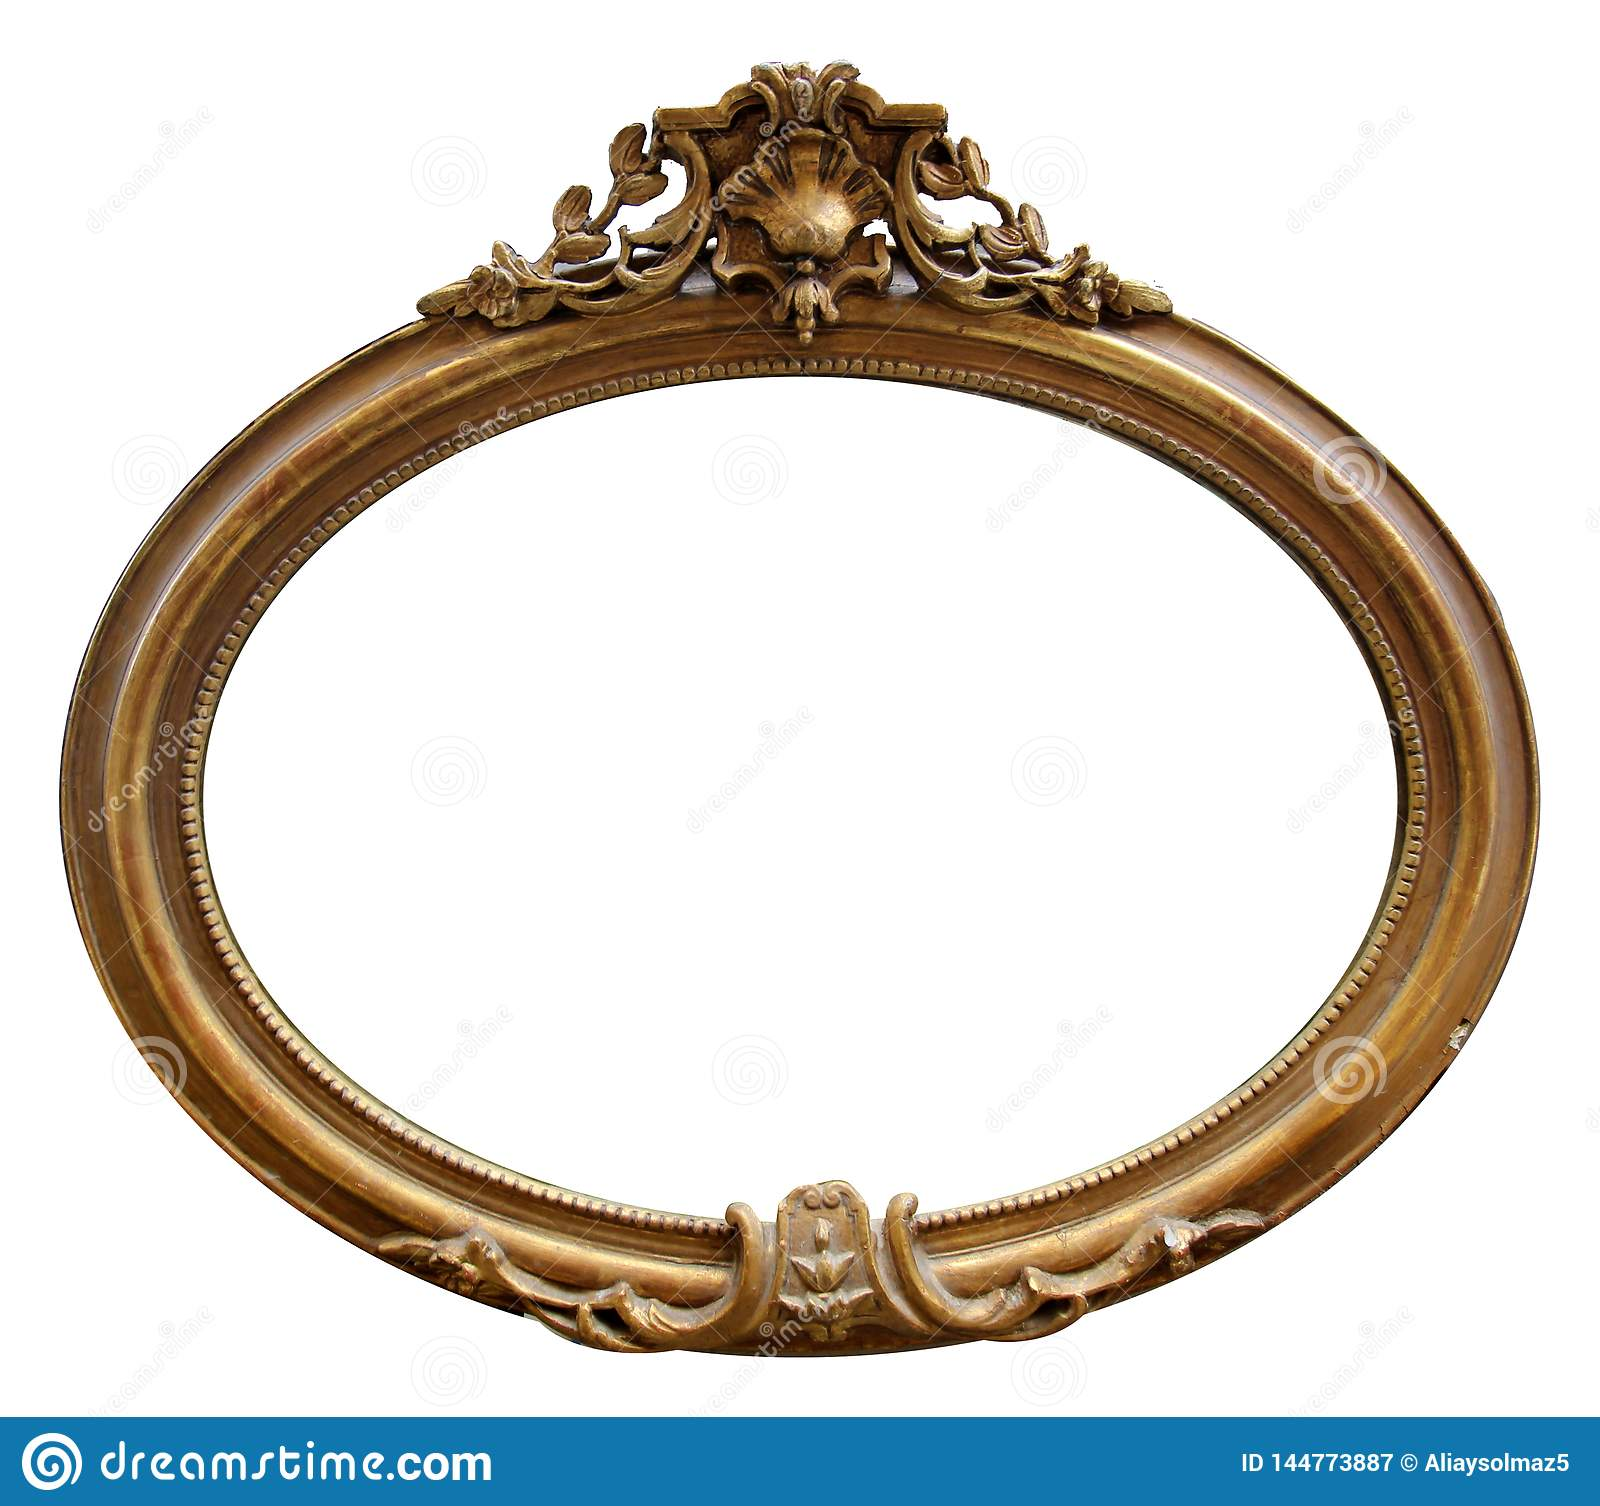 Isolated Mirror Frame, Ornamentation, Wooden Material